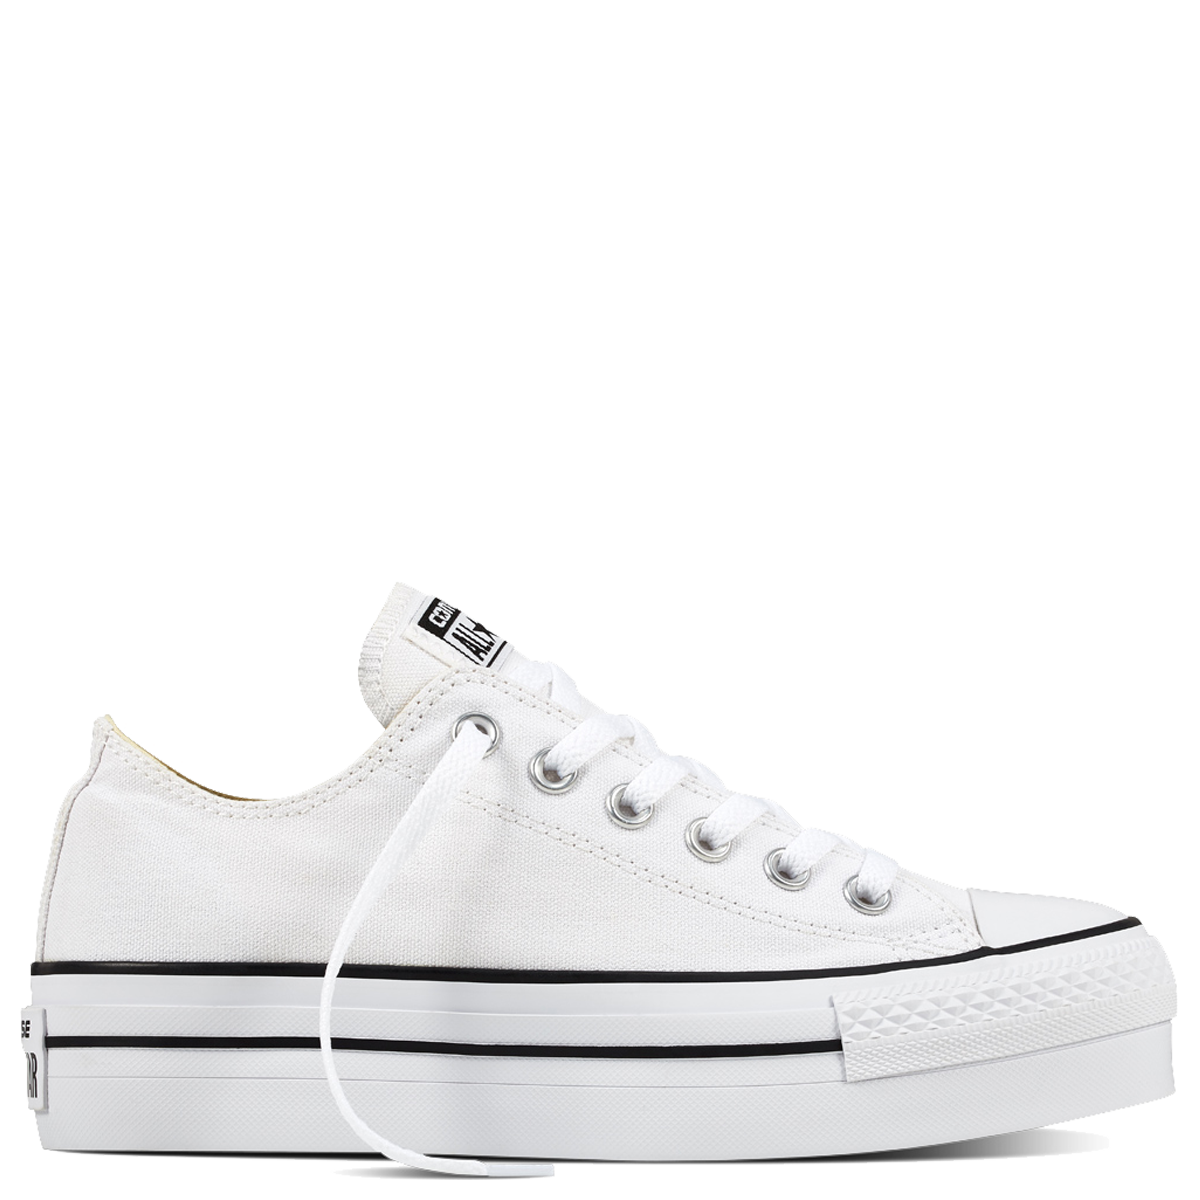 All star platform low. Converse transparent half clipart freeuse download